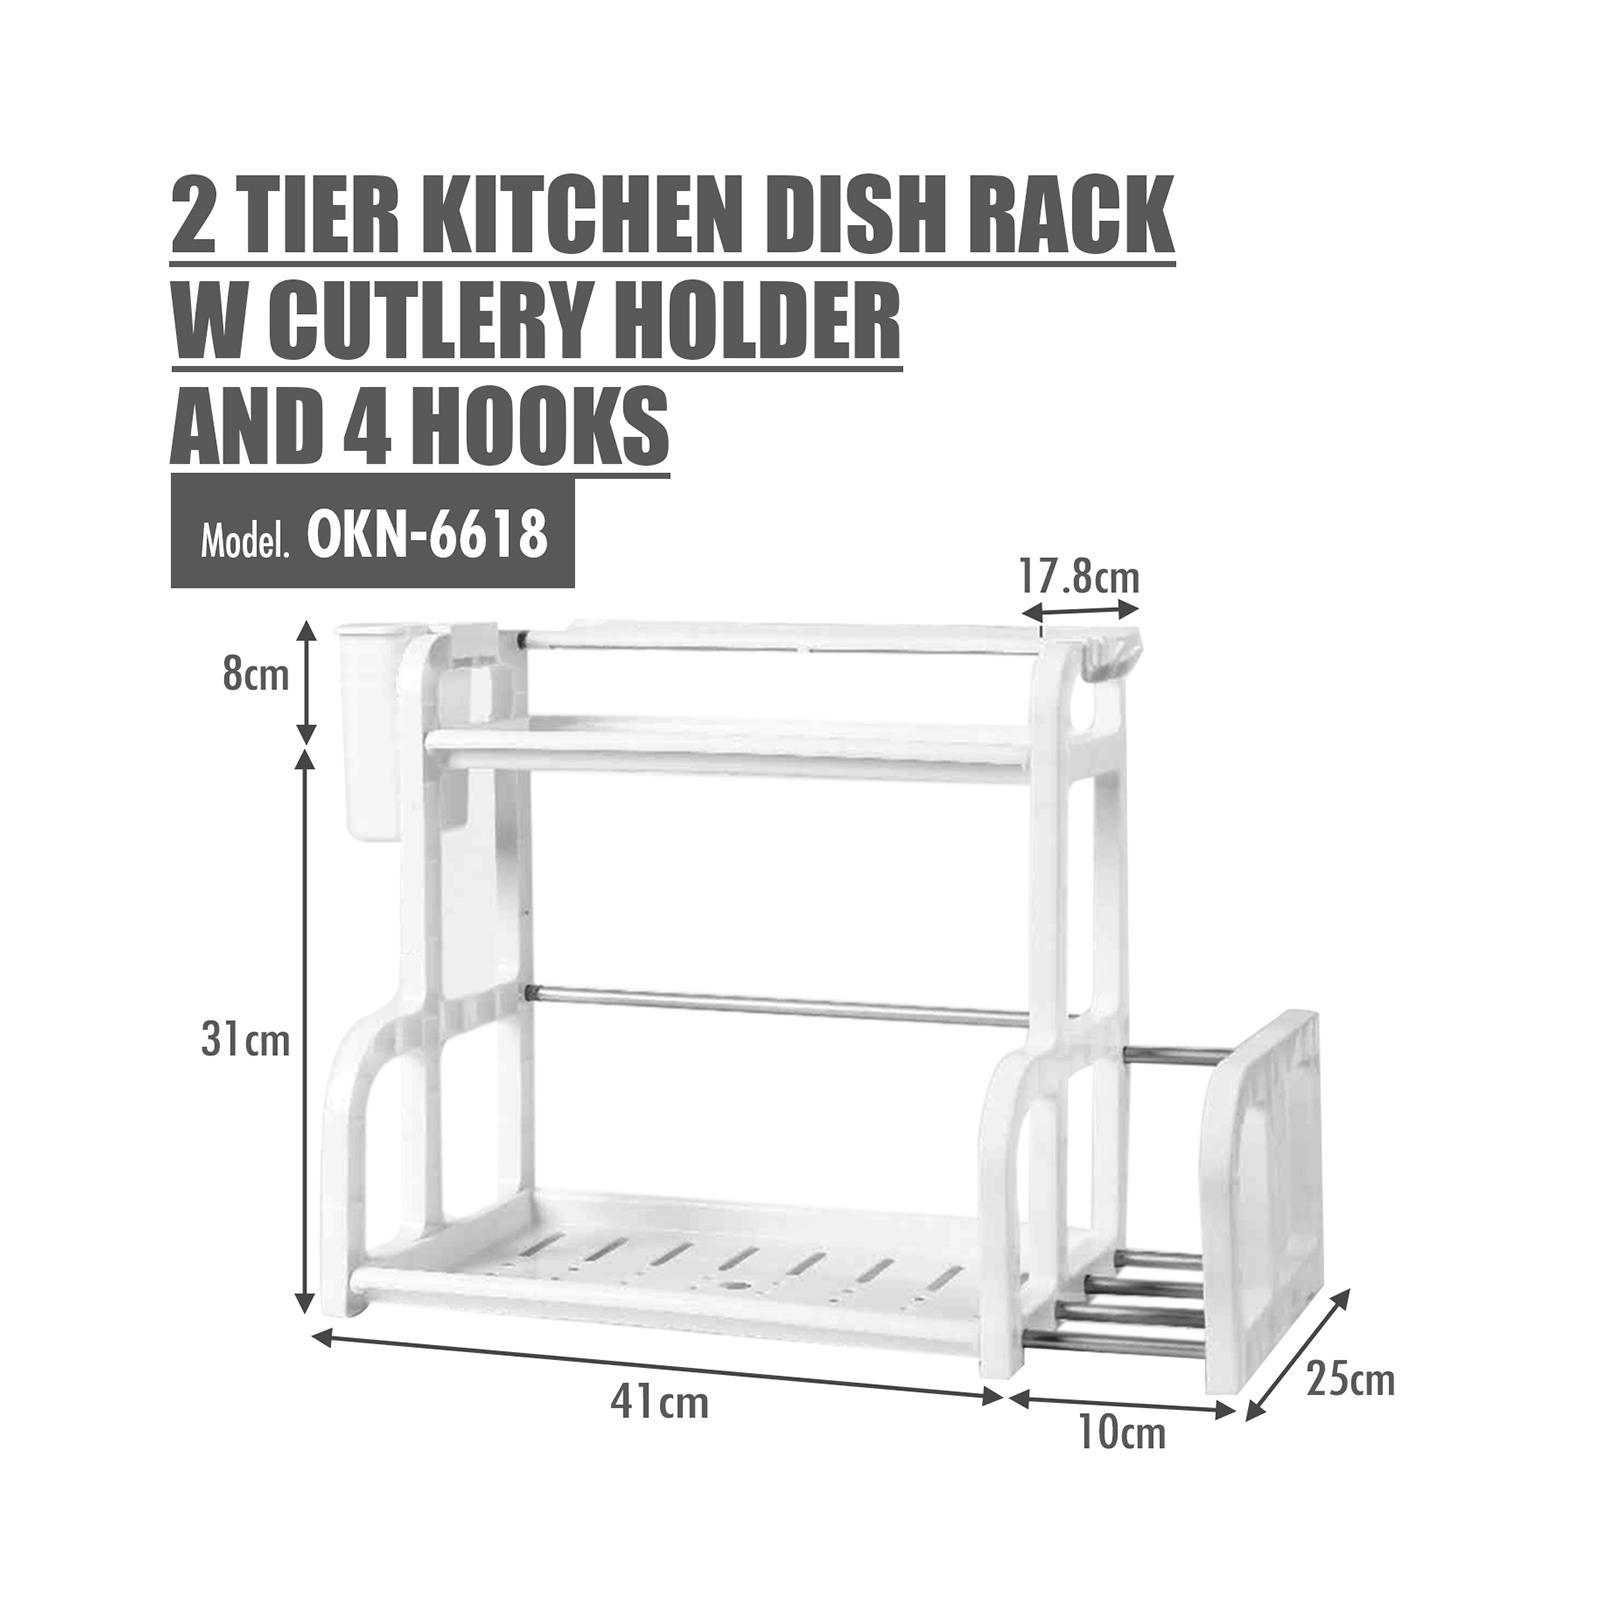 HOUZE 2 Tier Kitchen Dish Rack With Cutlery Holder And 4 Hooks